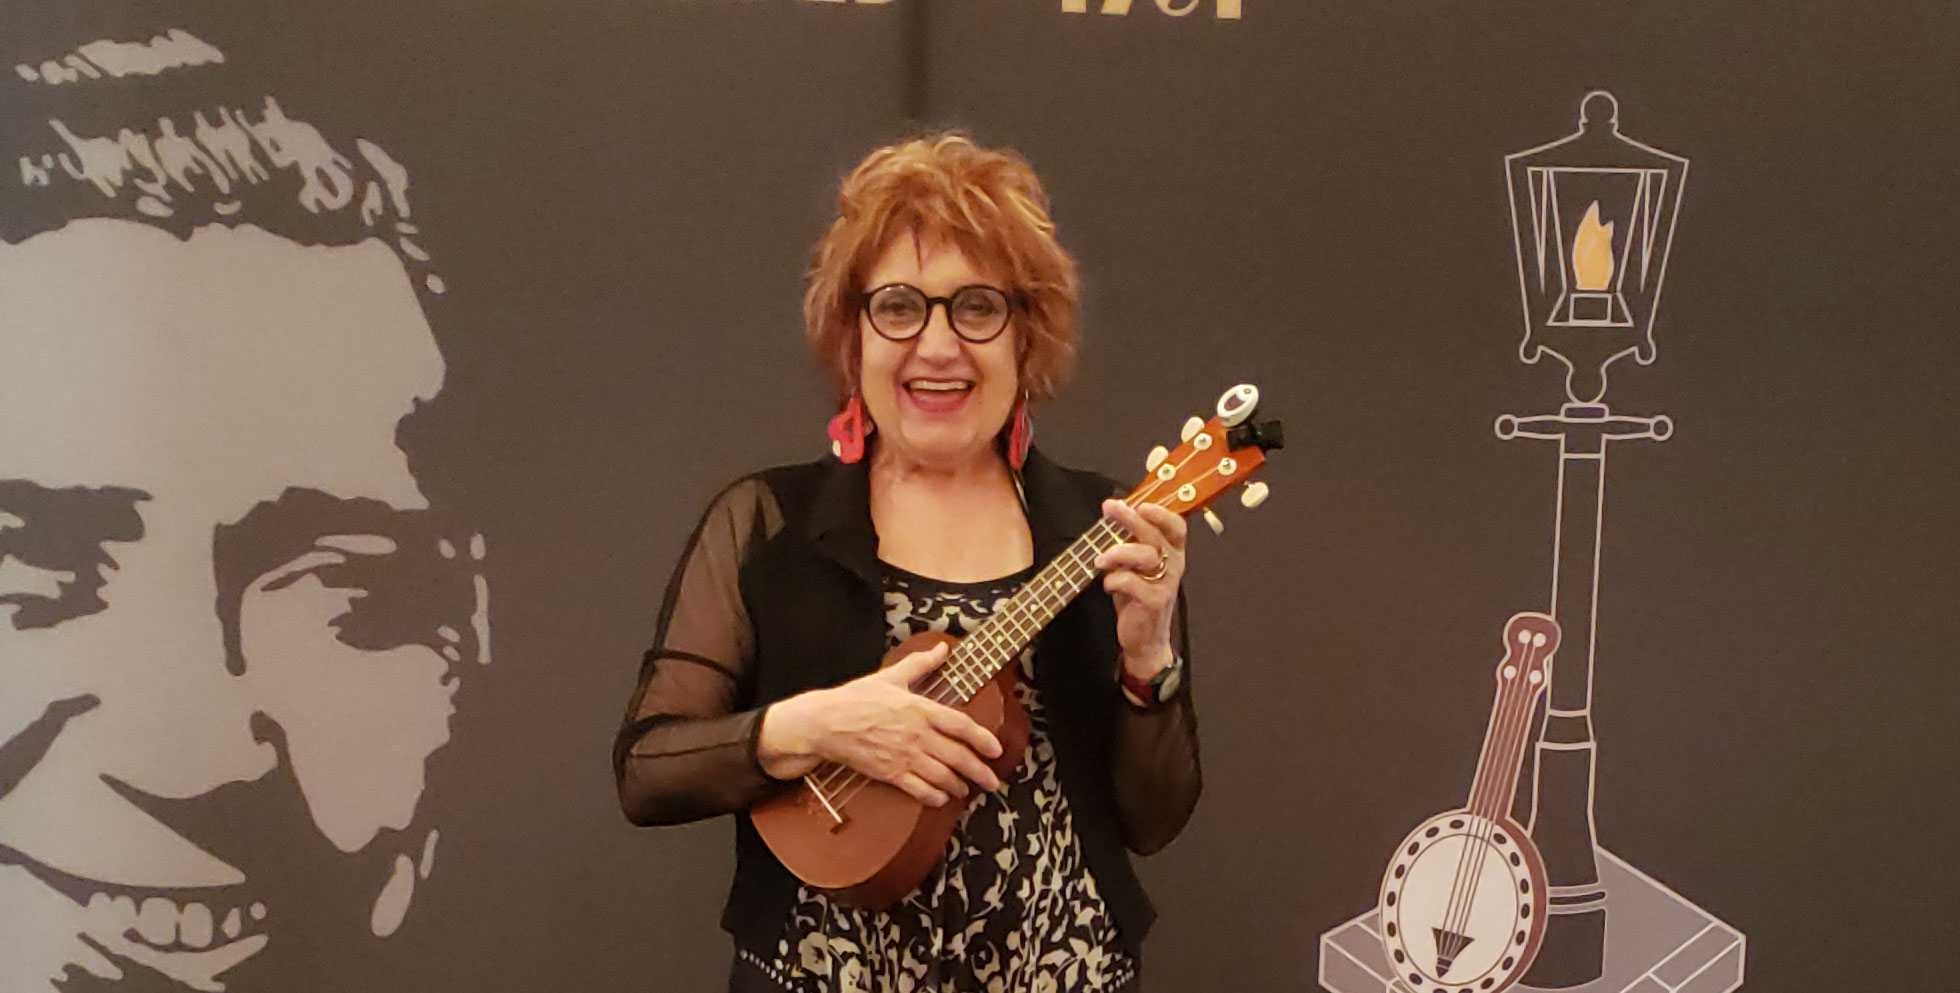 Ann Welsh with a Ukelele